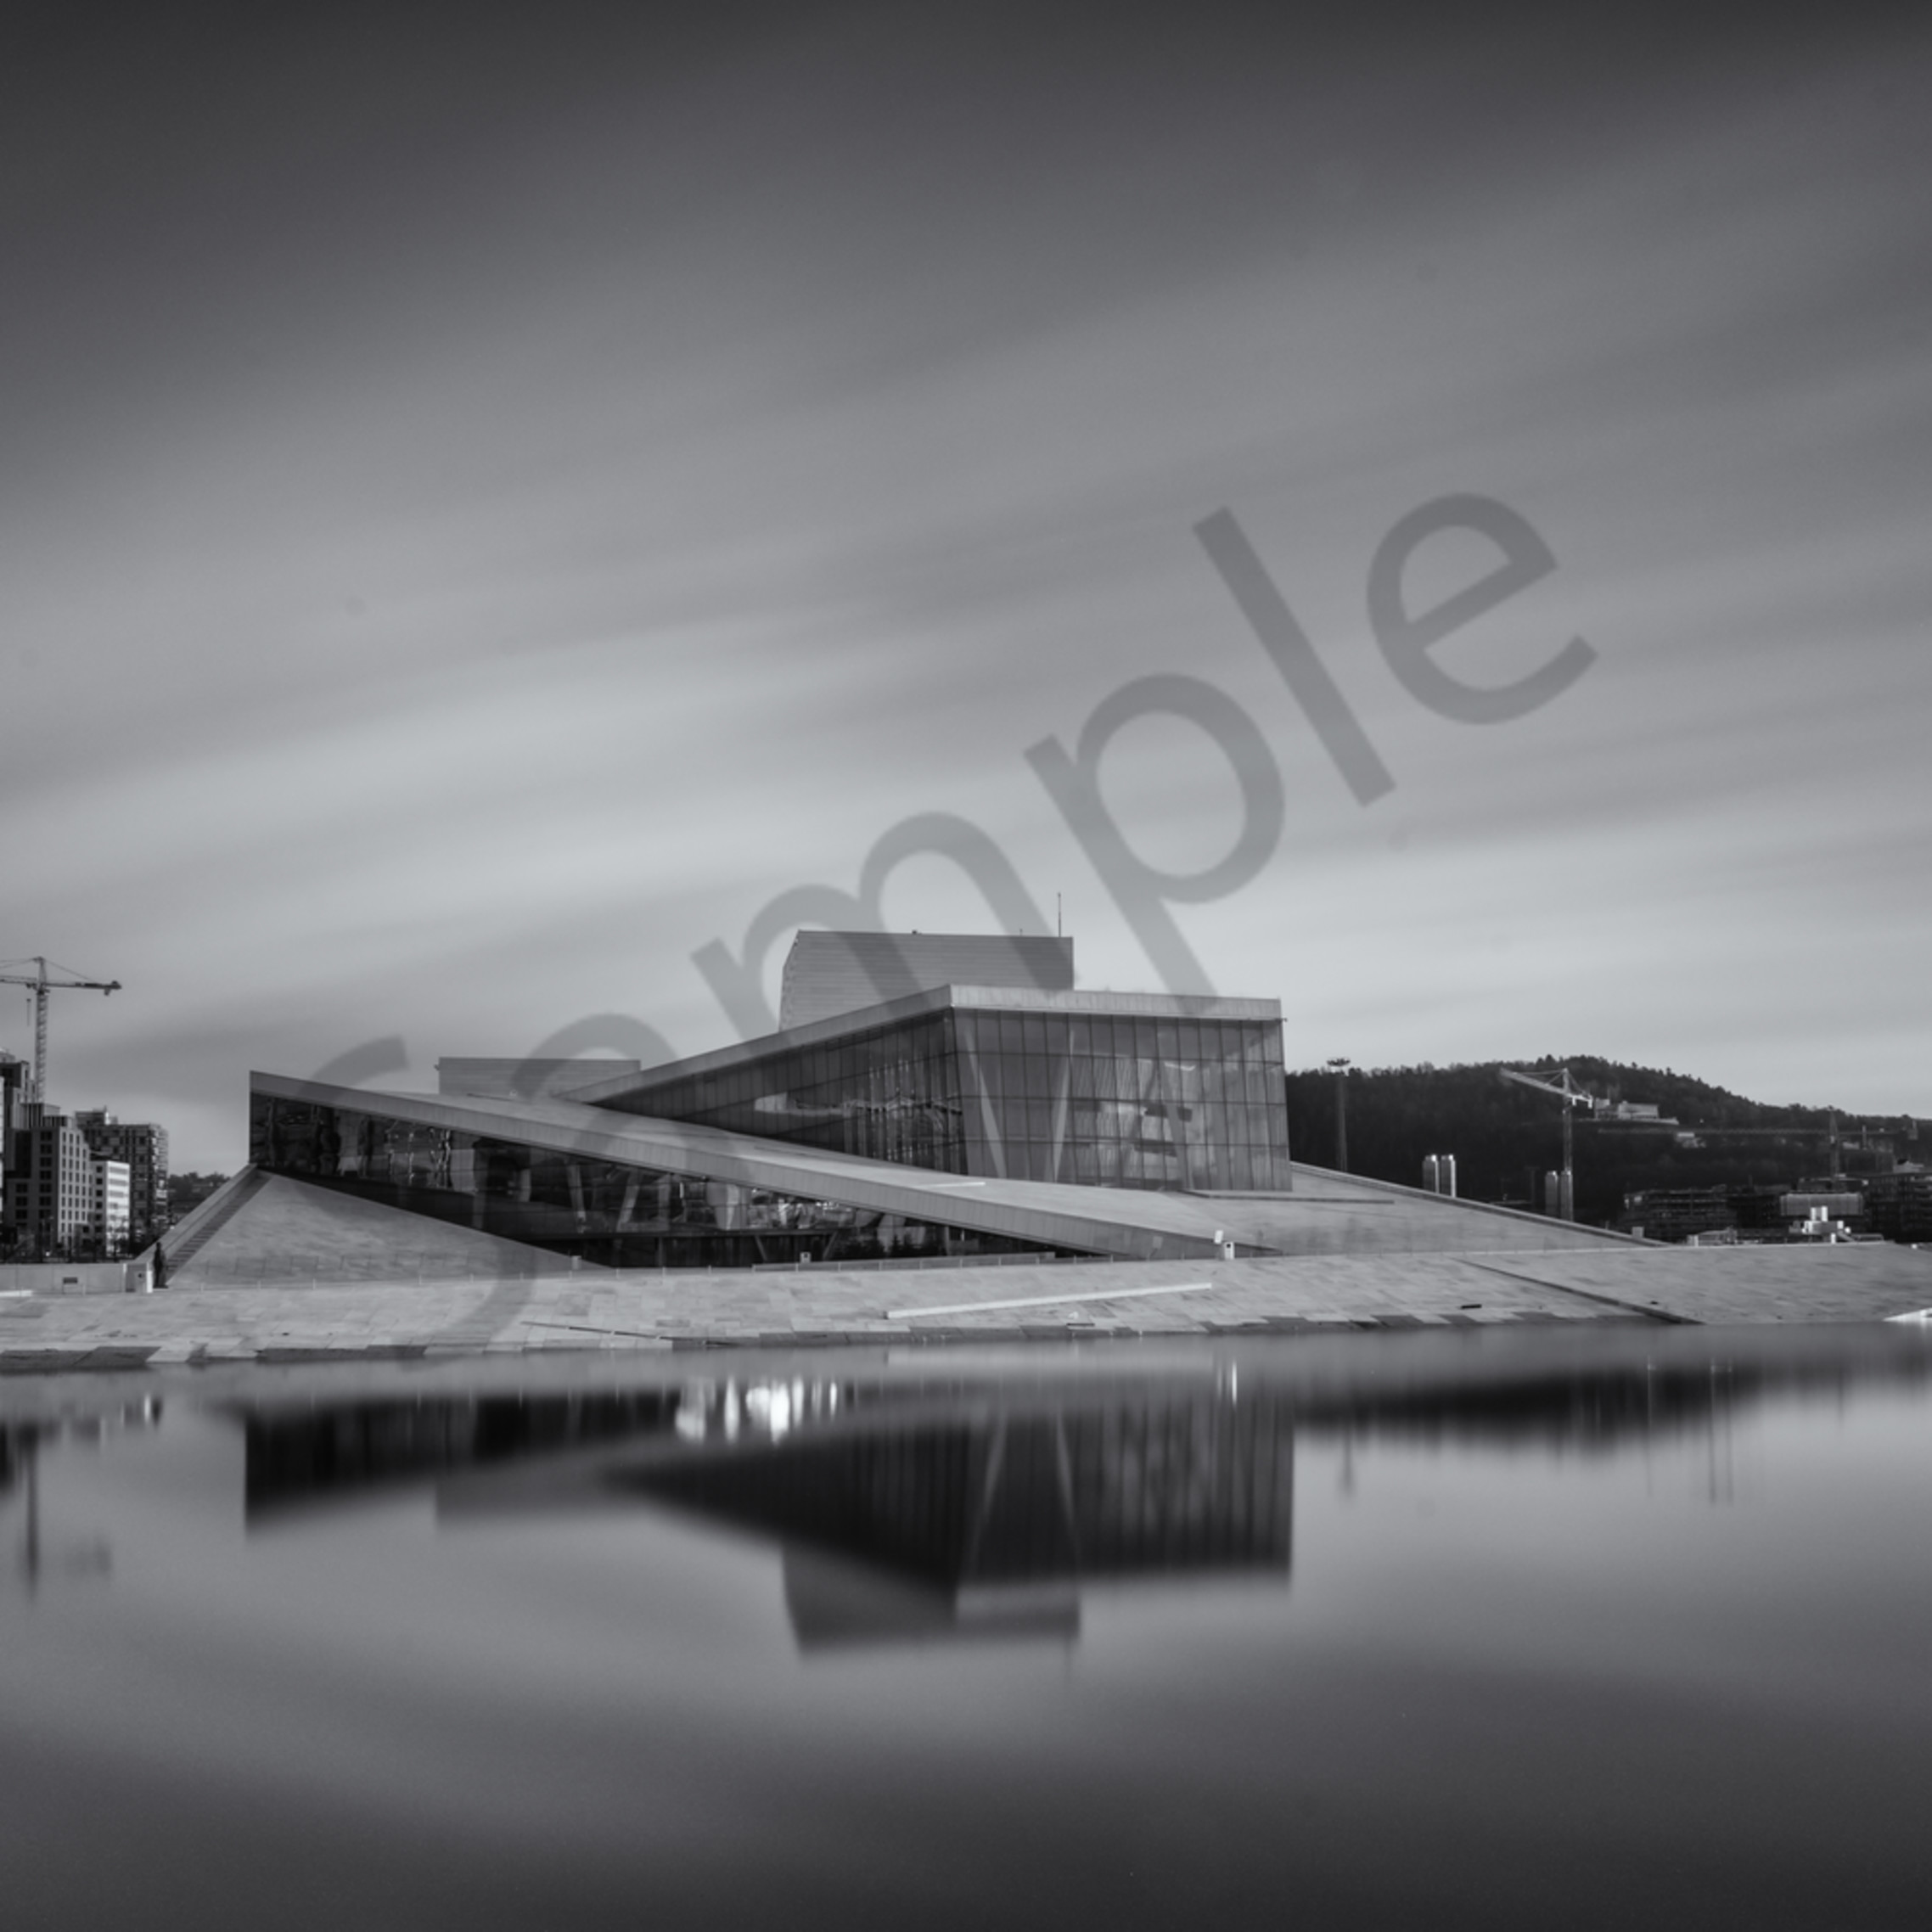 Opera house   oslo norway hyx45k